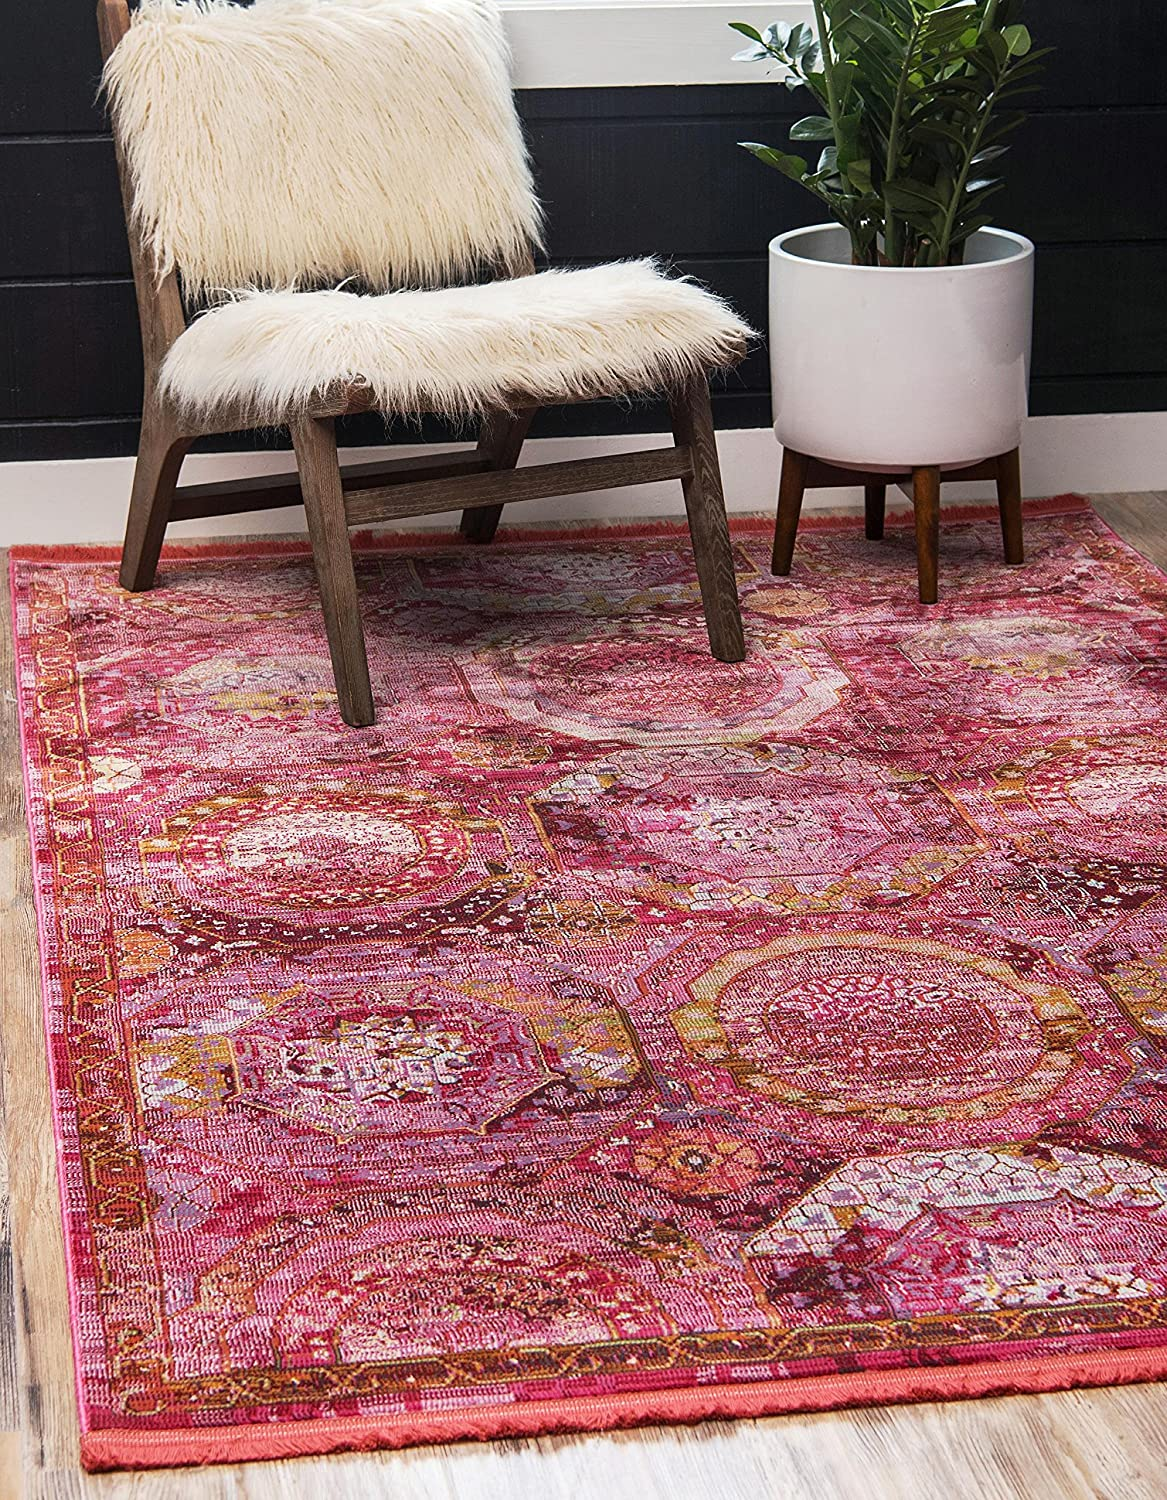 Pink 2' x 3' Unique Loom Baracoa Collection Bright Tones Vintage Traditional Light bluee Runner Rug (3' x 10')